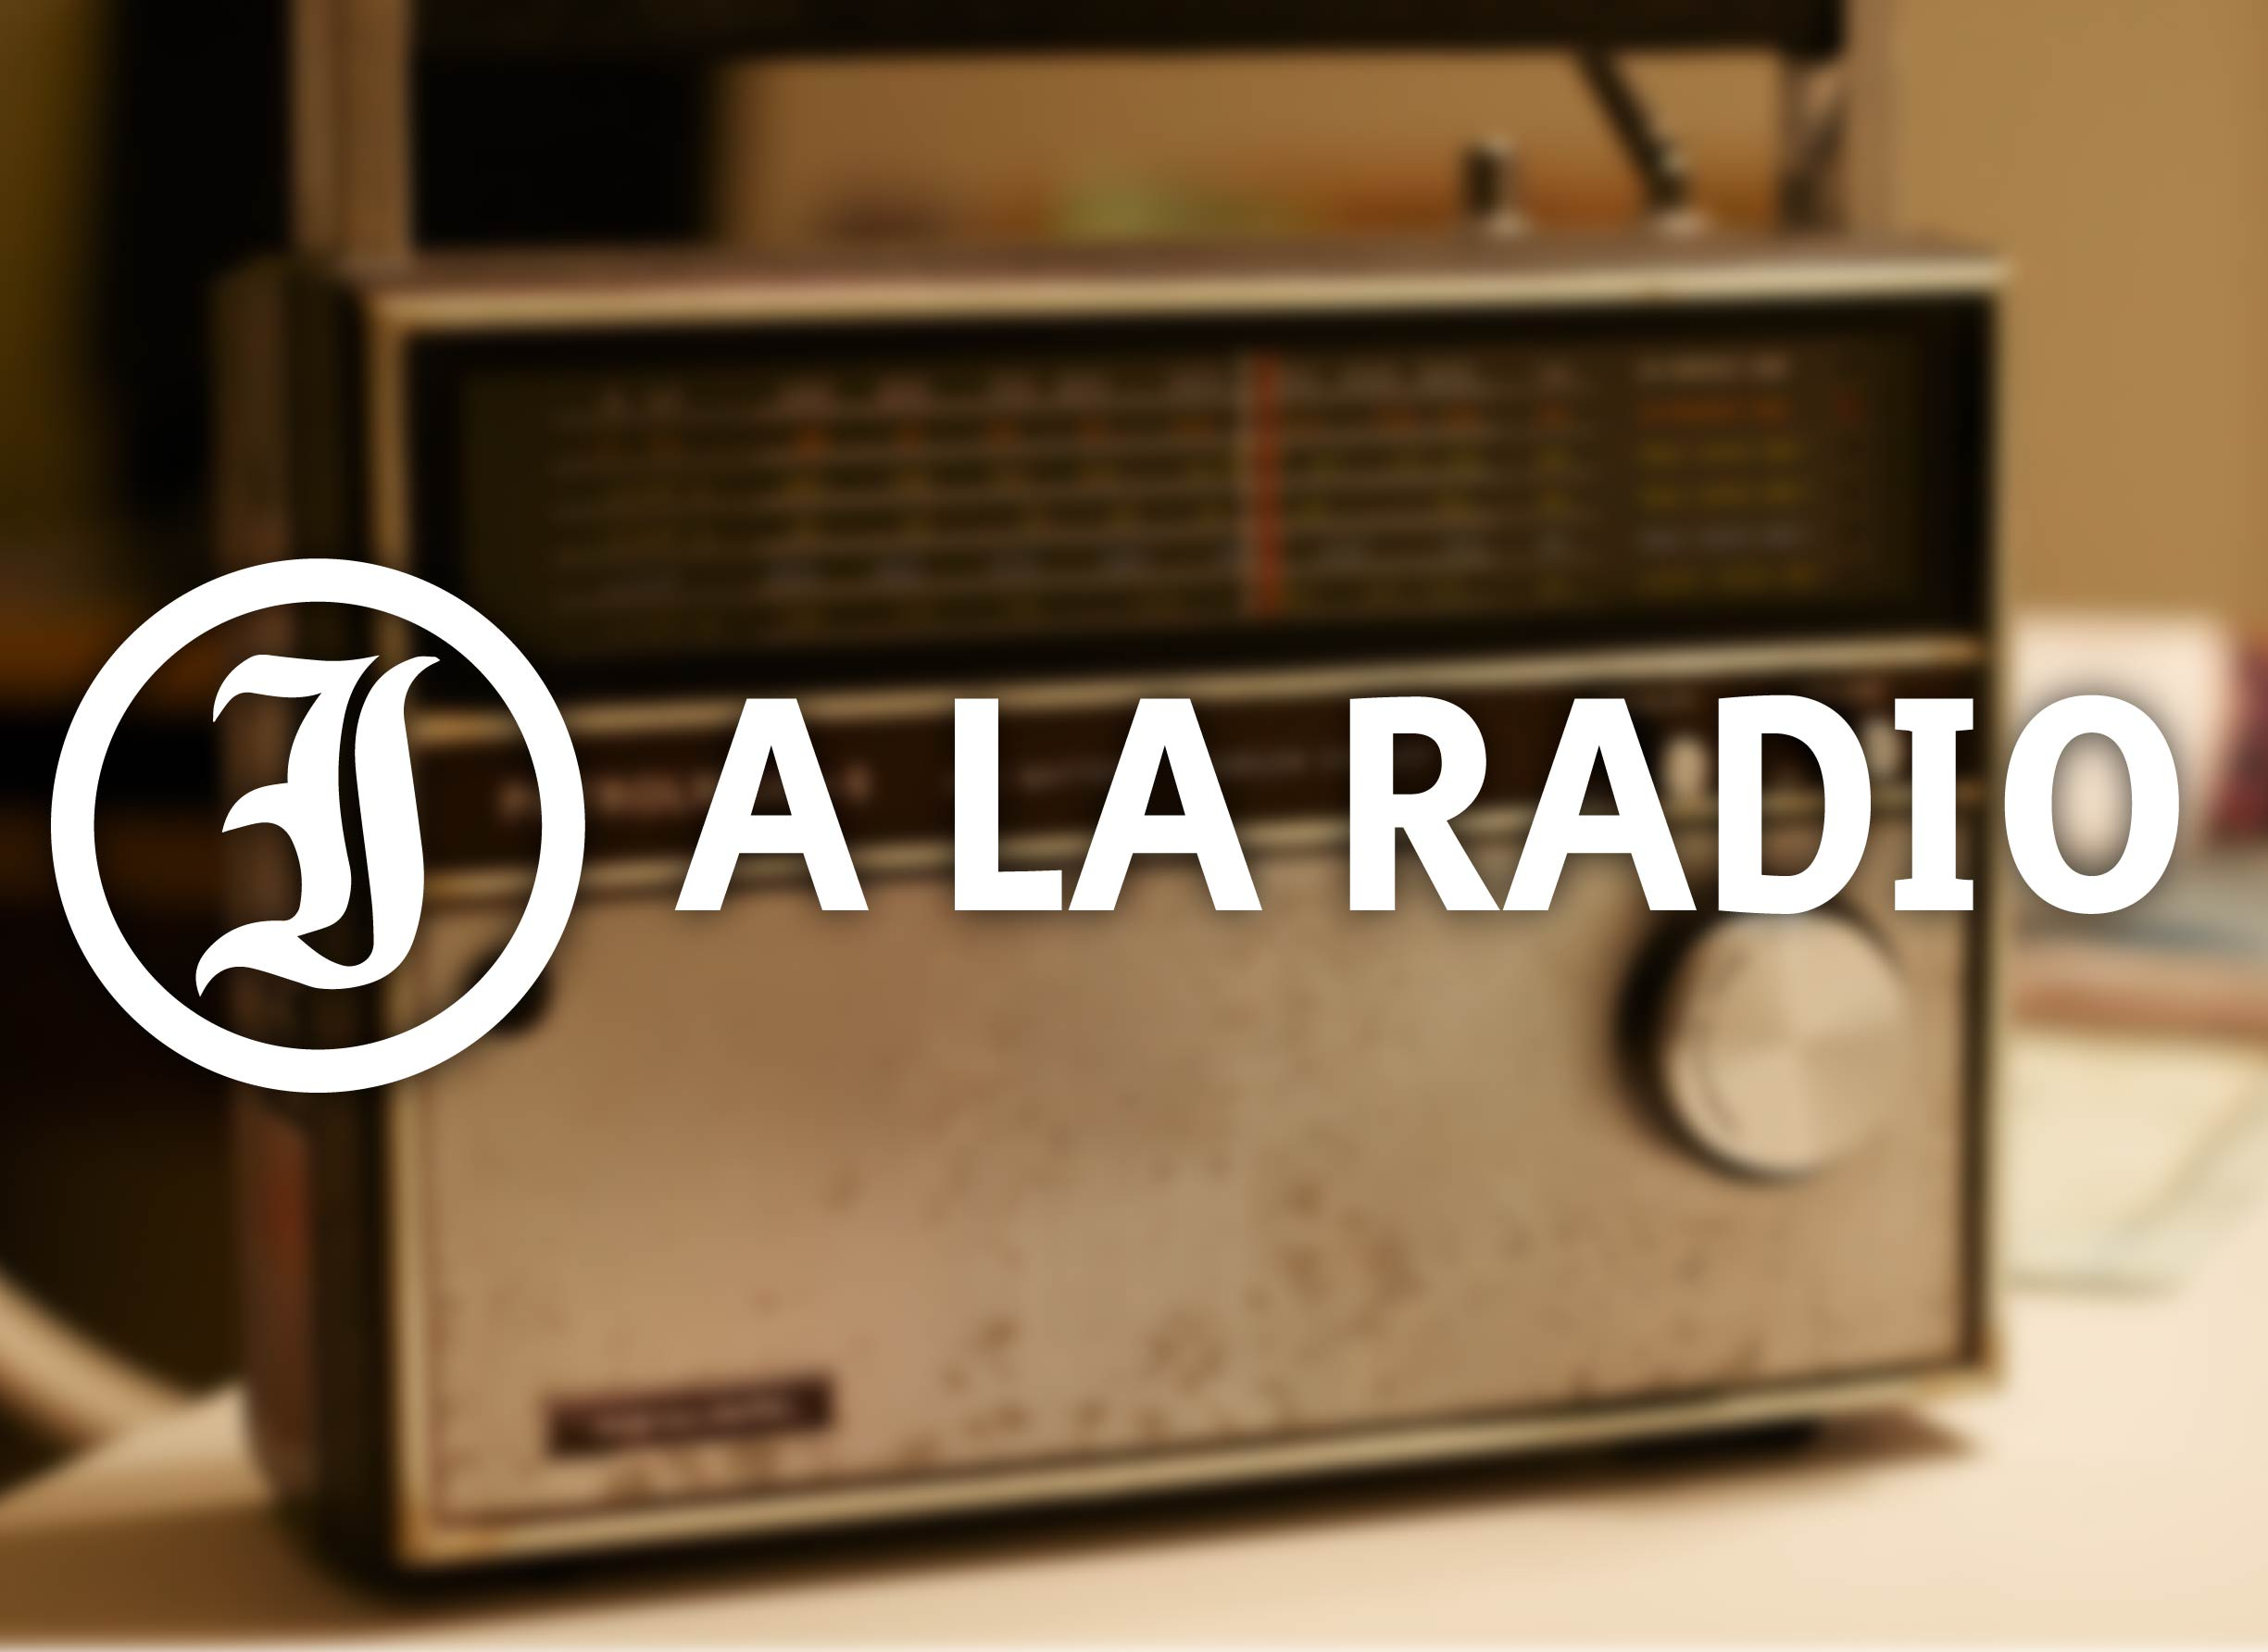 Le Journal International à la radio